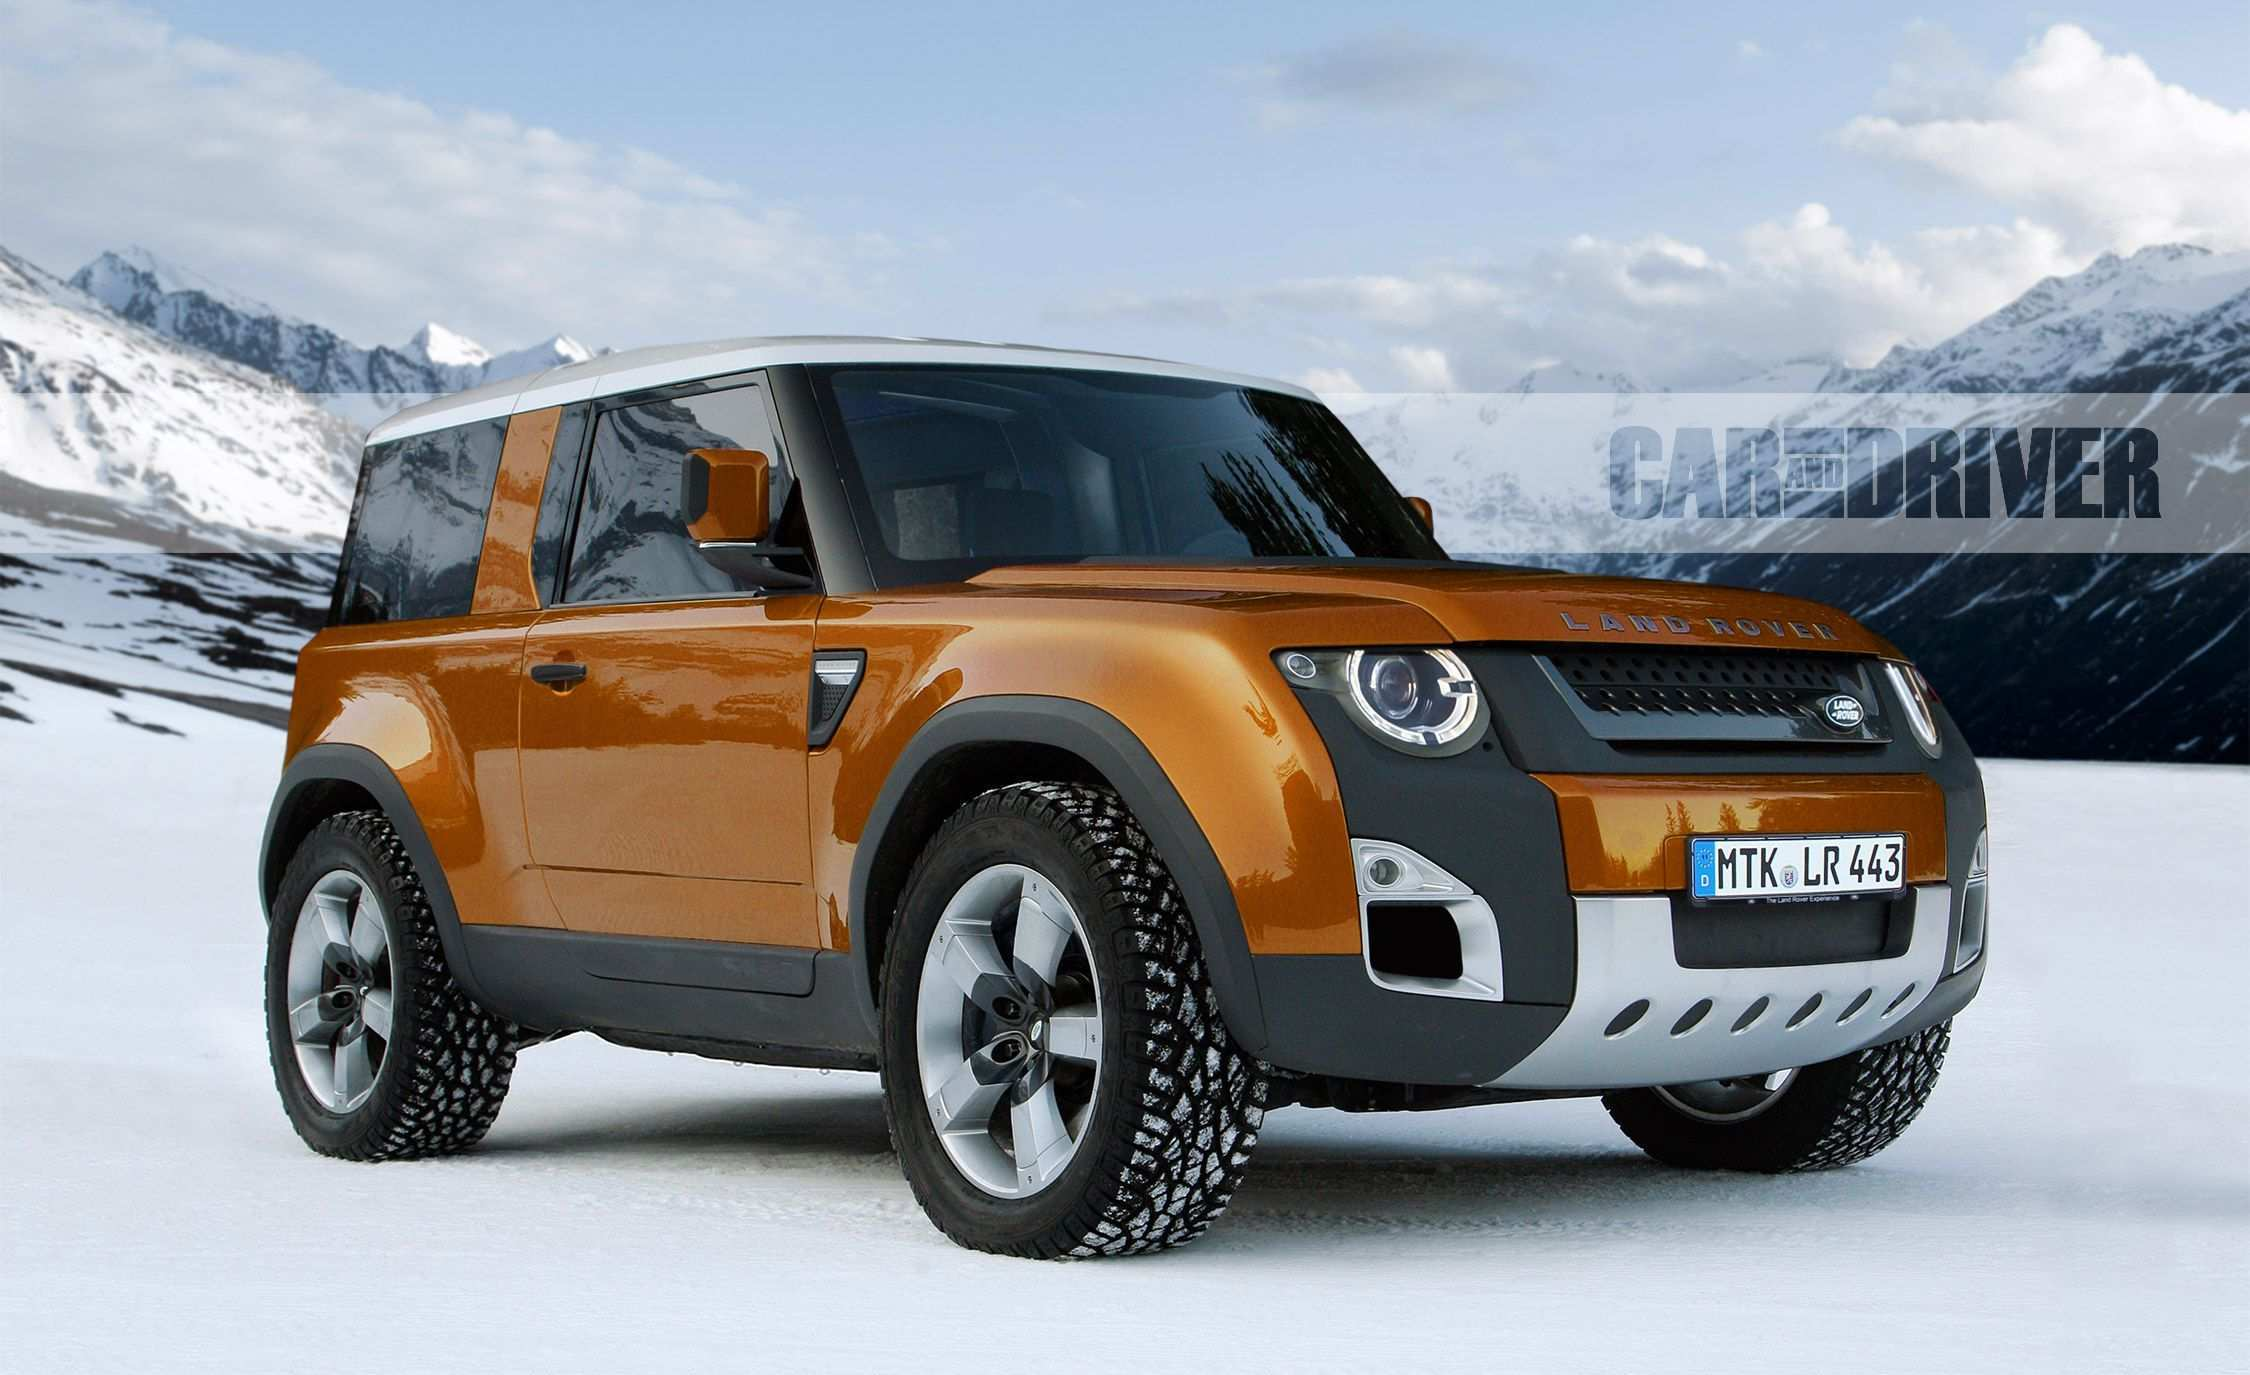 53 Great 2020 Land Rover Truck Pricing with 2020 Land Rover Truck